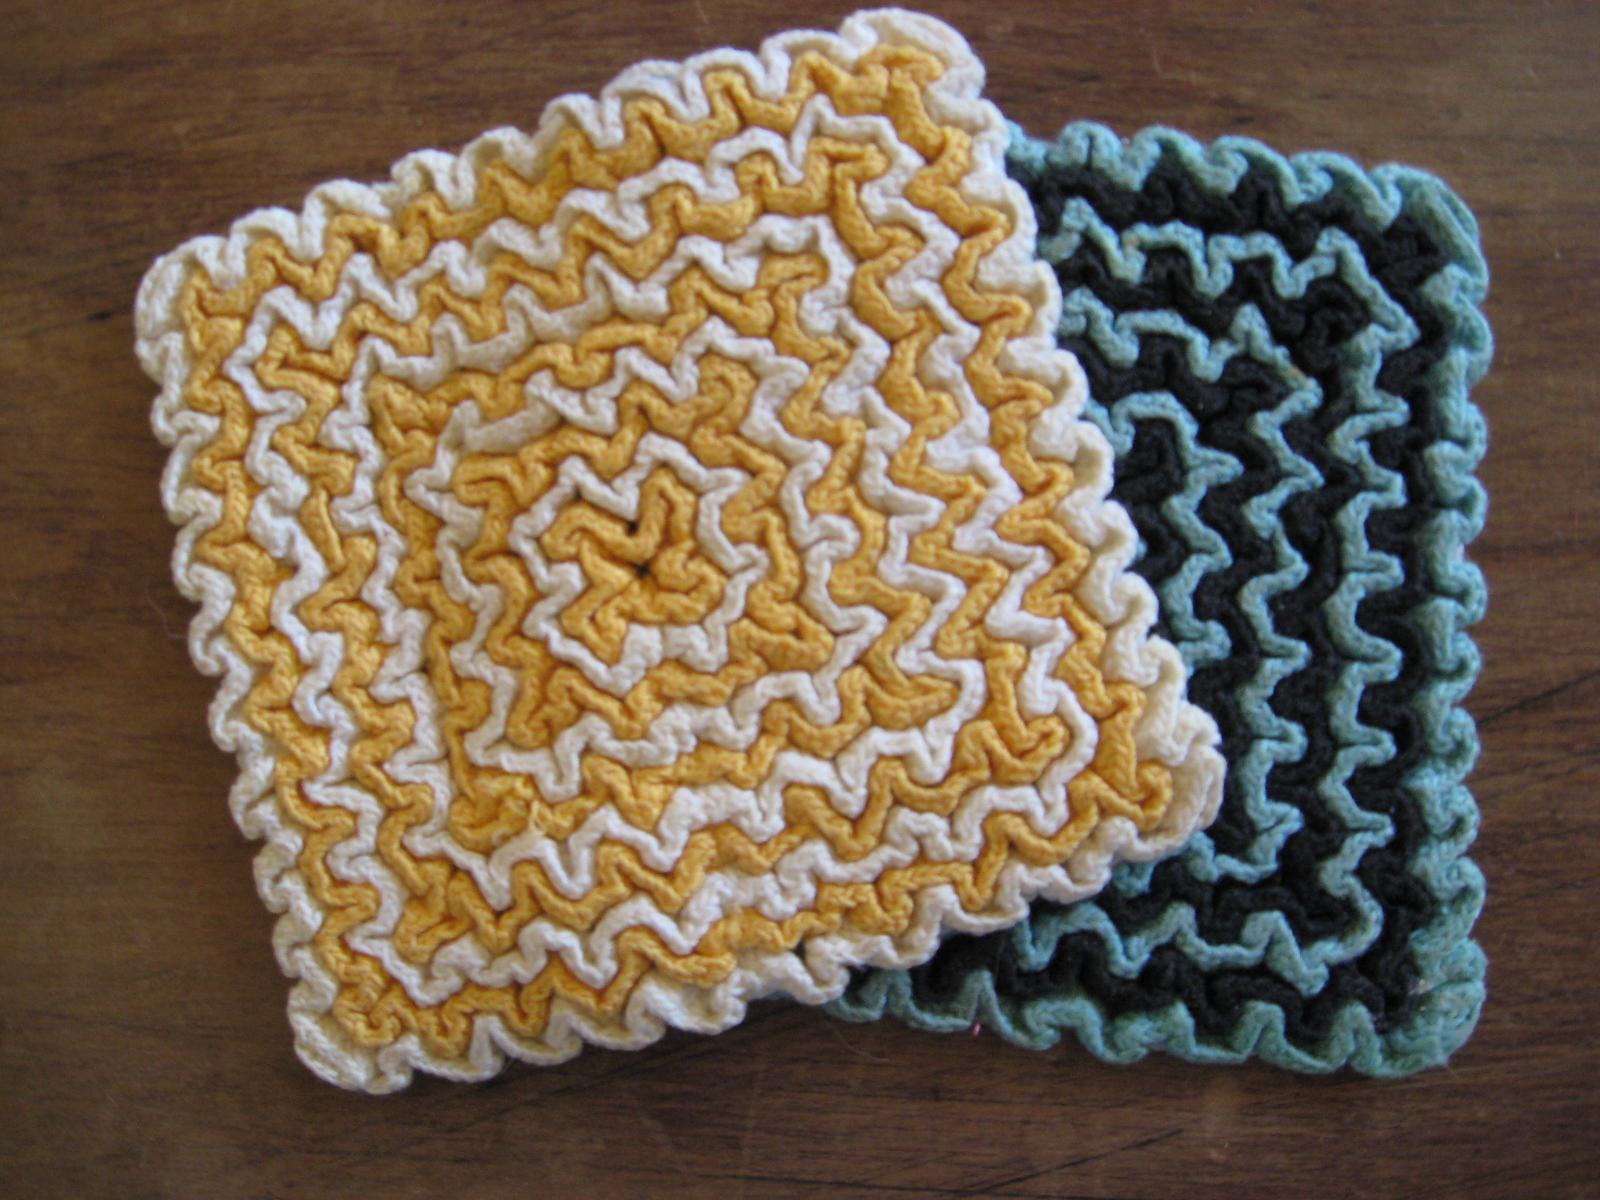 Crocheting Hotpads : joy for grace: Crocheted Hotpads, Thrift Style